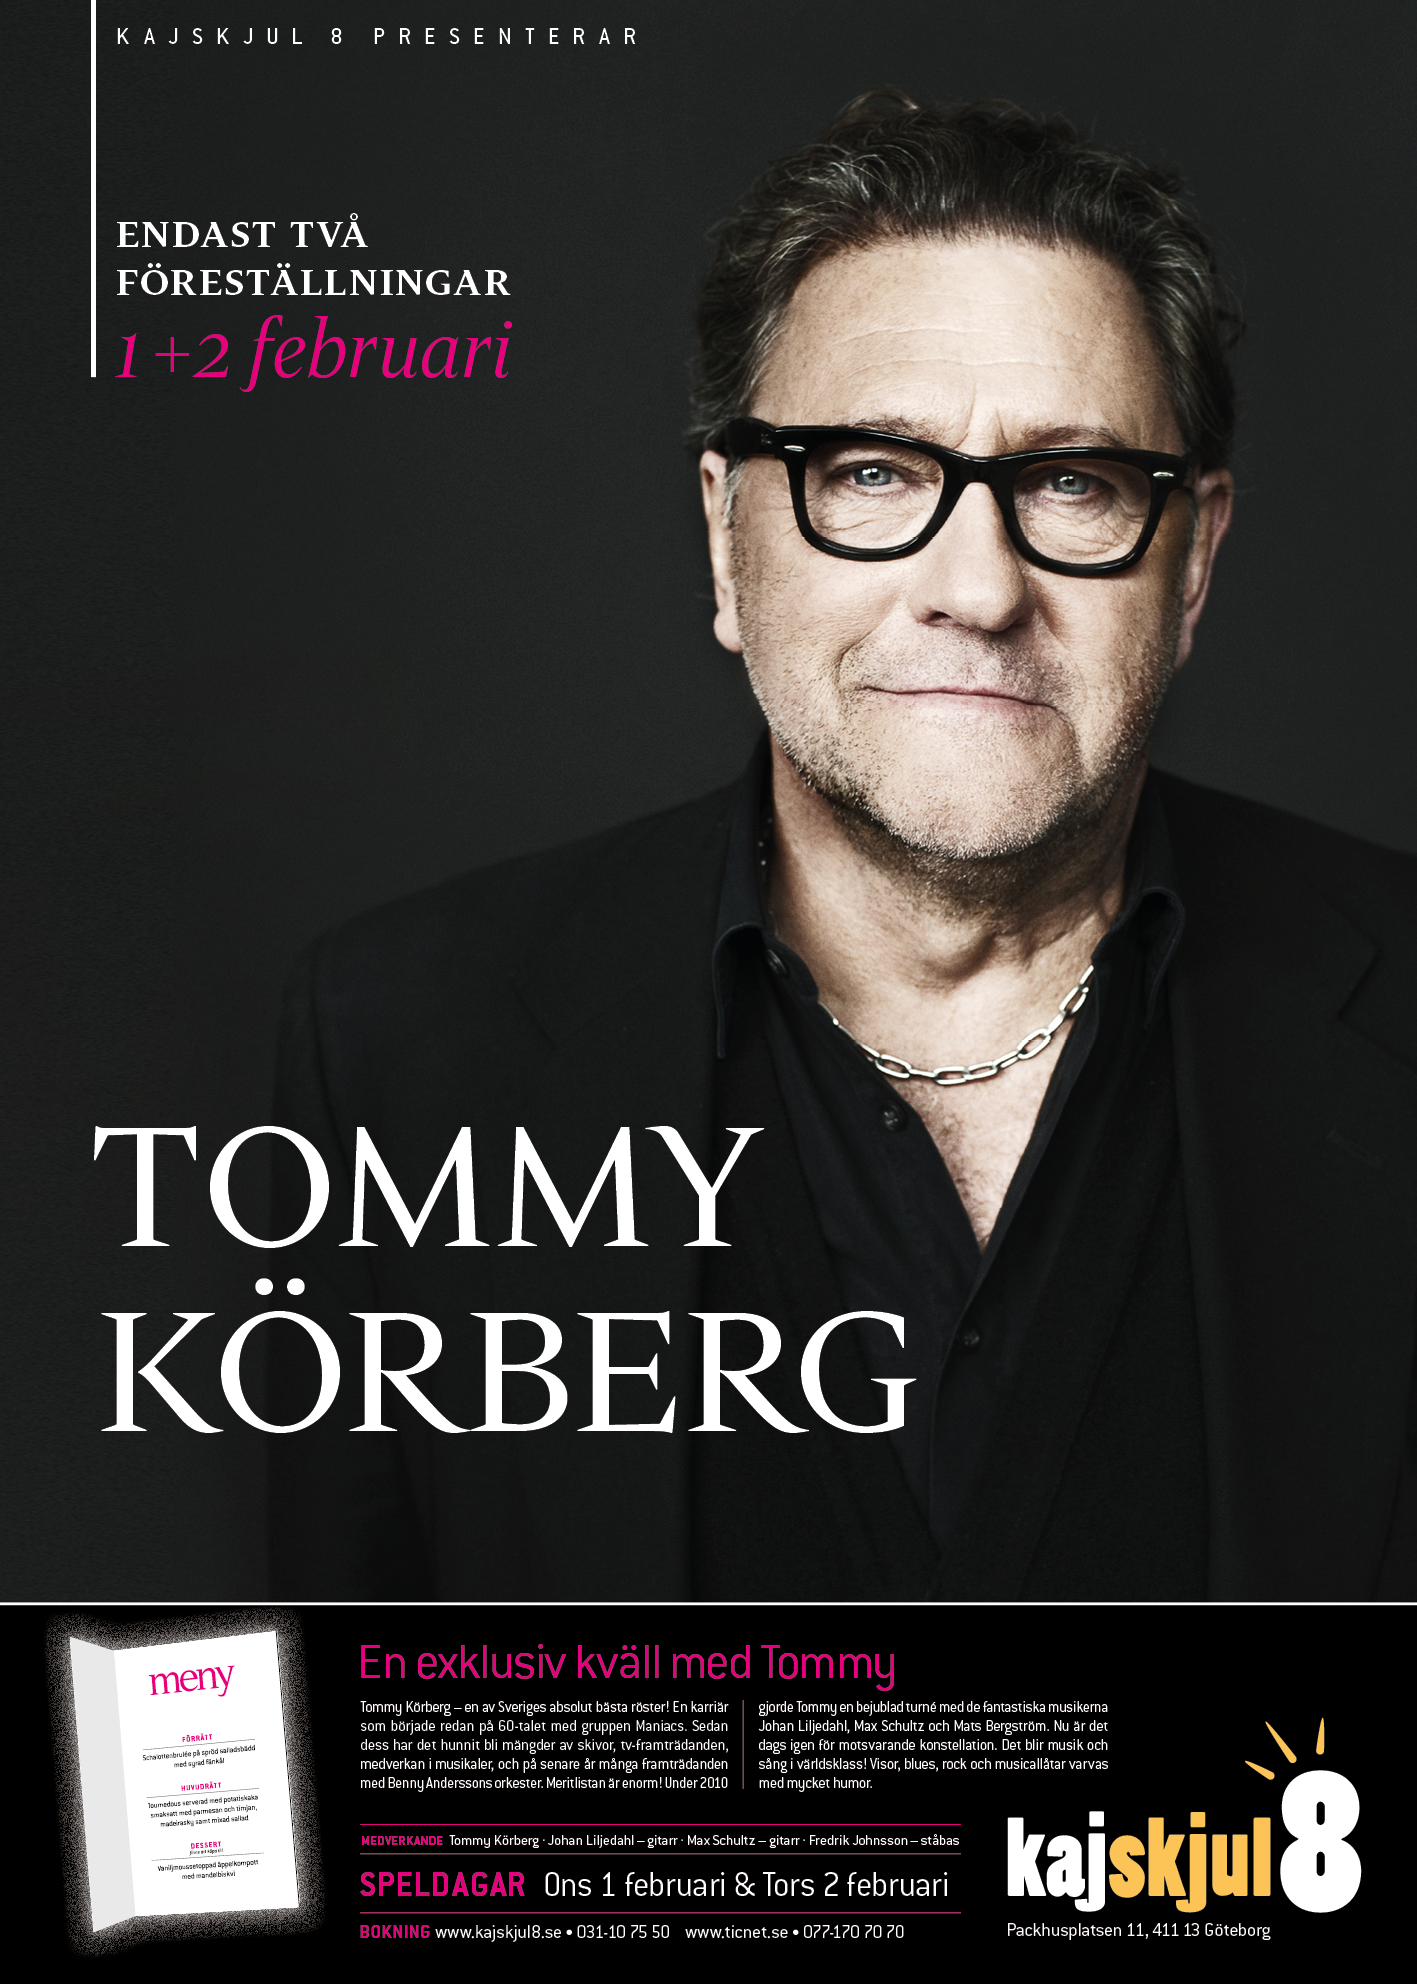 Tommy-Poster-50x70mm-high-04.png